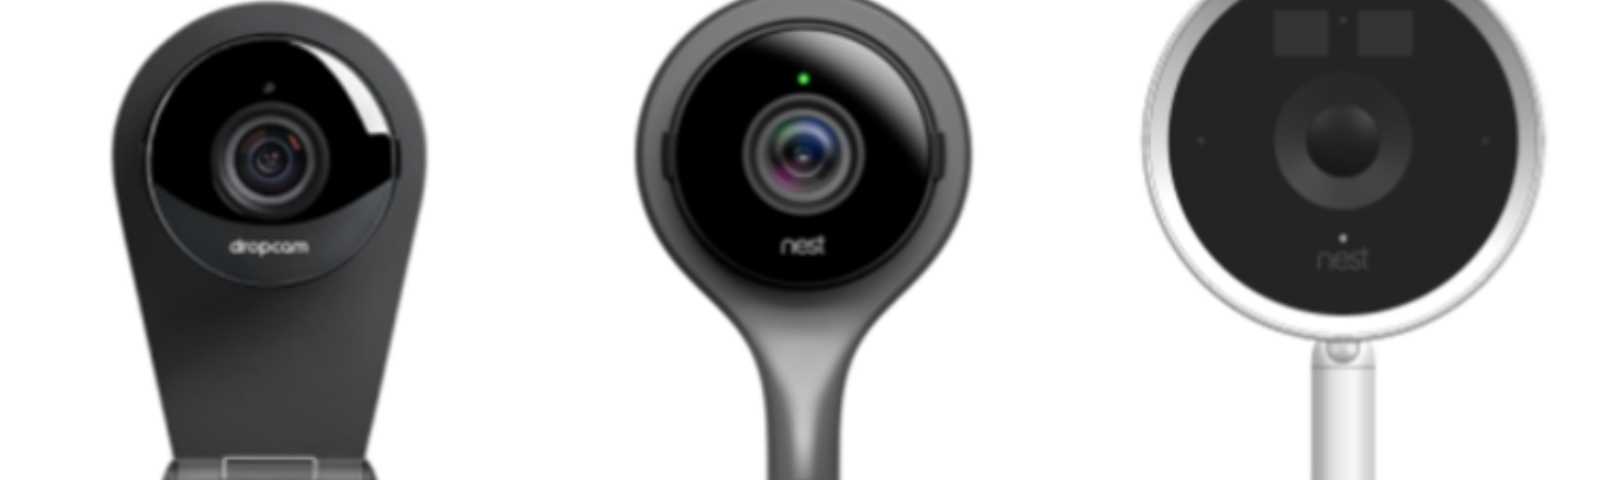 Hinging on Design: Nest Cam IQ's Hinge - Building for the Home